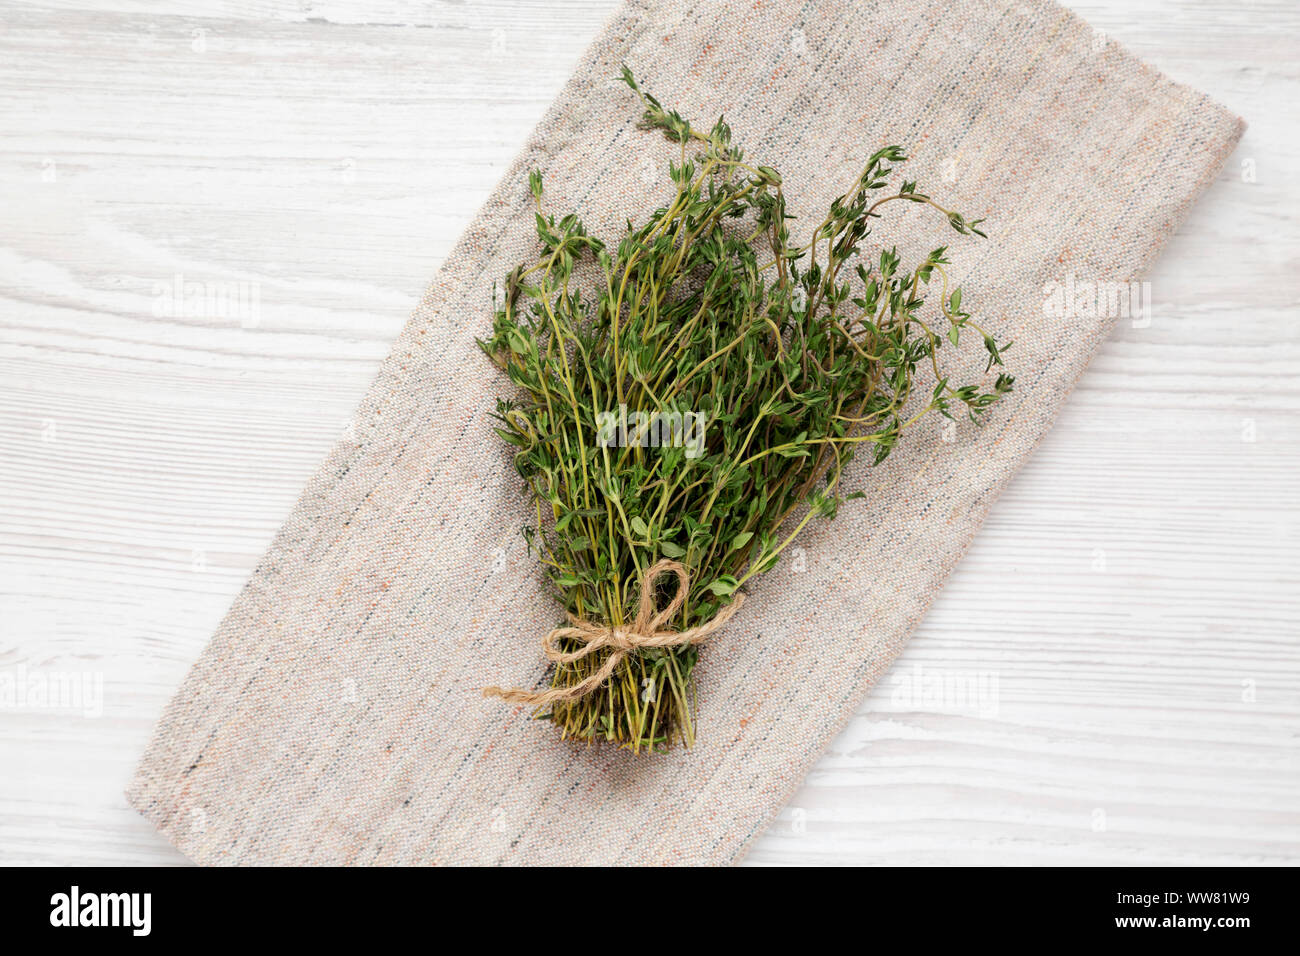 Raw organic fresh thyme on cloth, overhead view. Flat lay, top view, from above. Close-up. Stock Photo